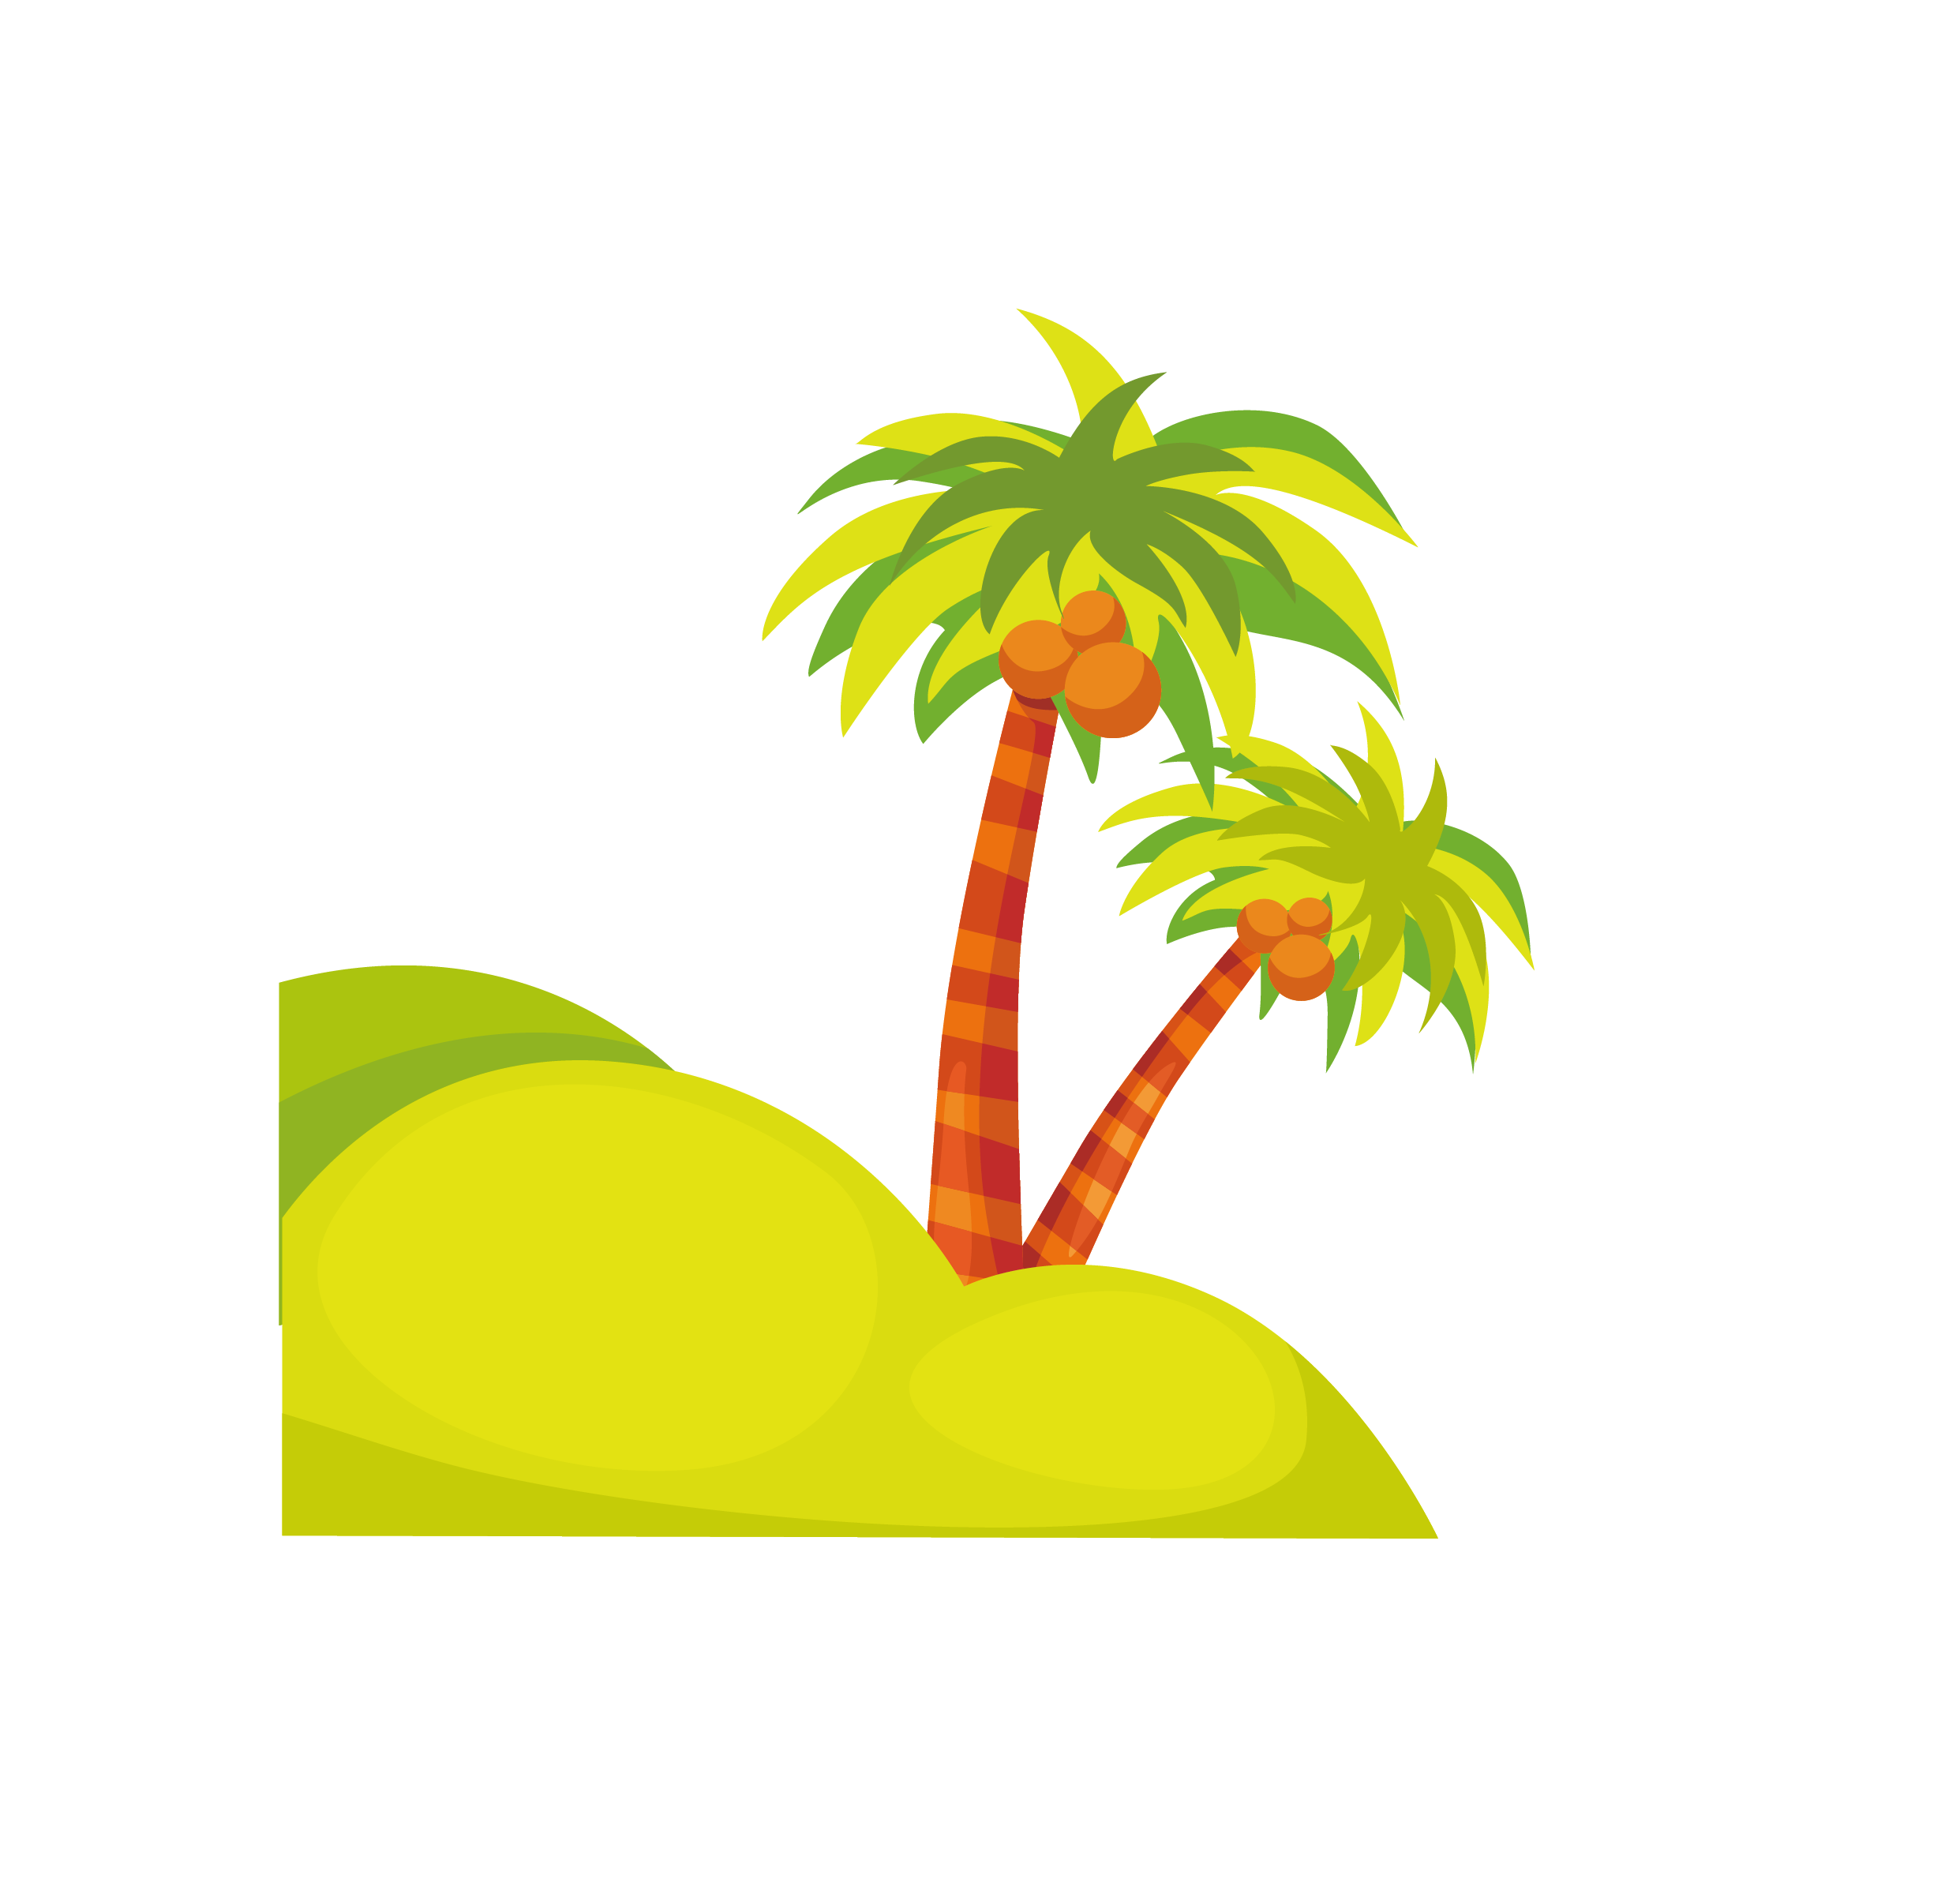 Clipart coconut tree image black and white Cartoon Clip art - coconut tree 2483*2384 transprent Png Free ... image black and white